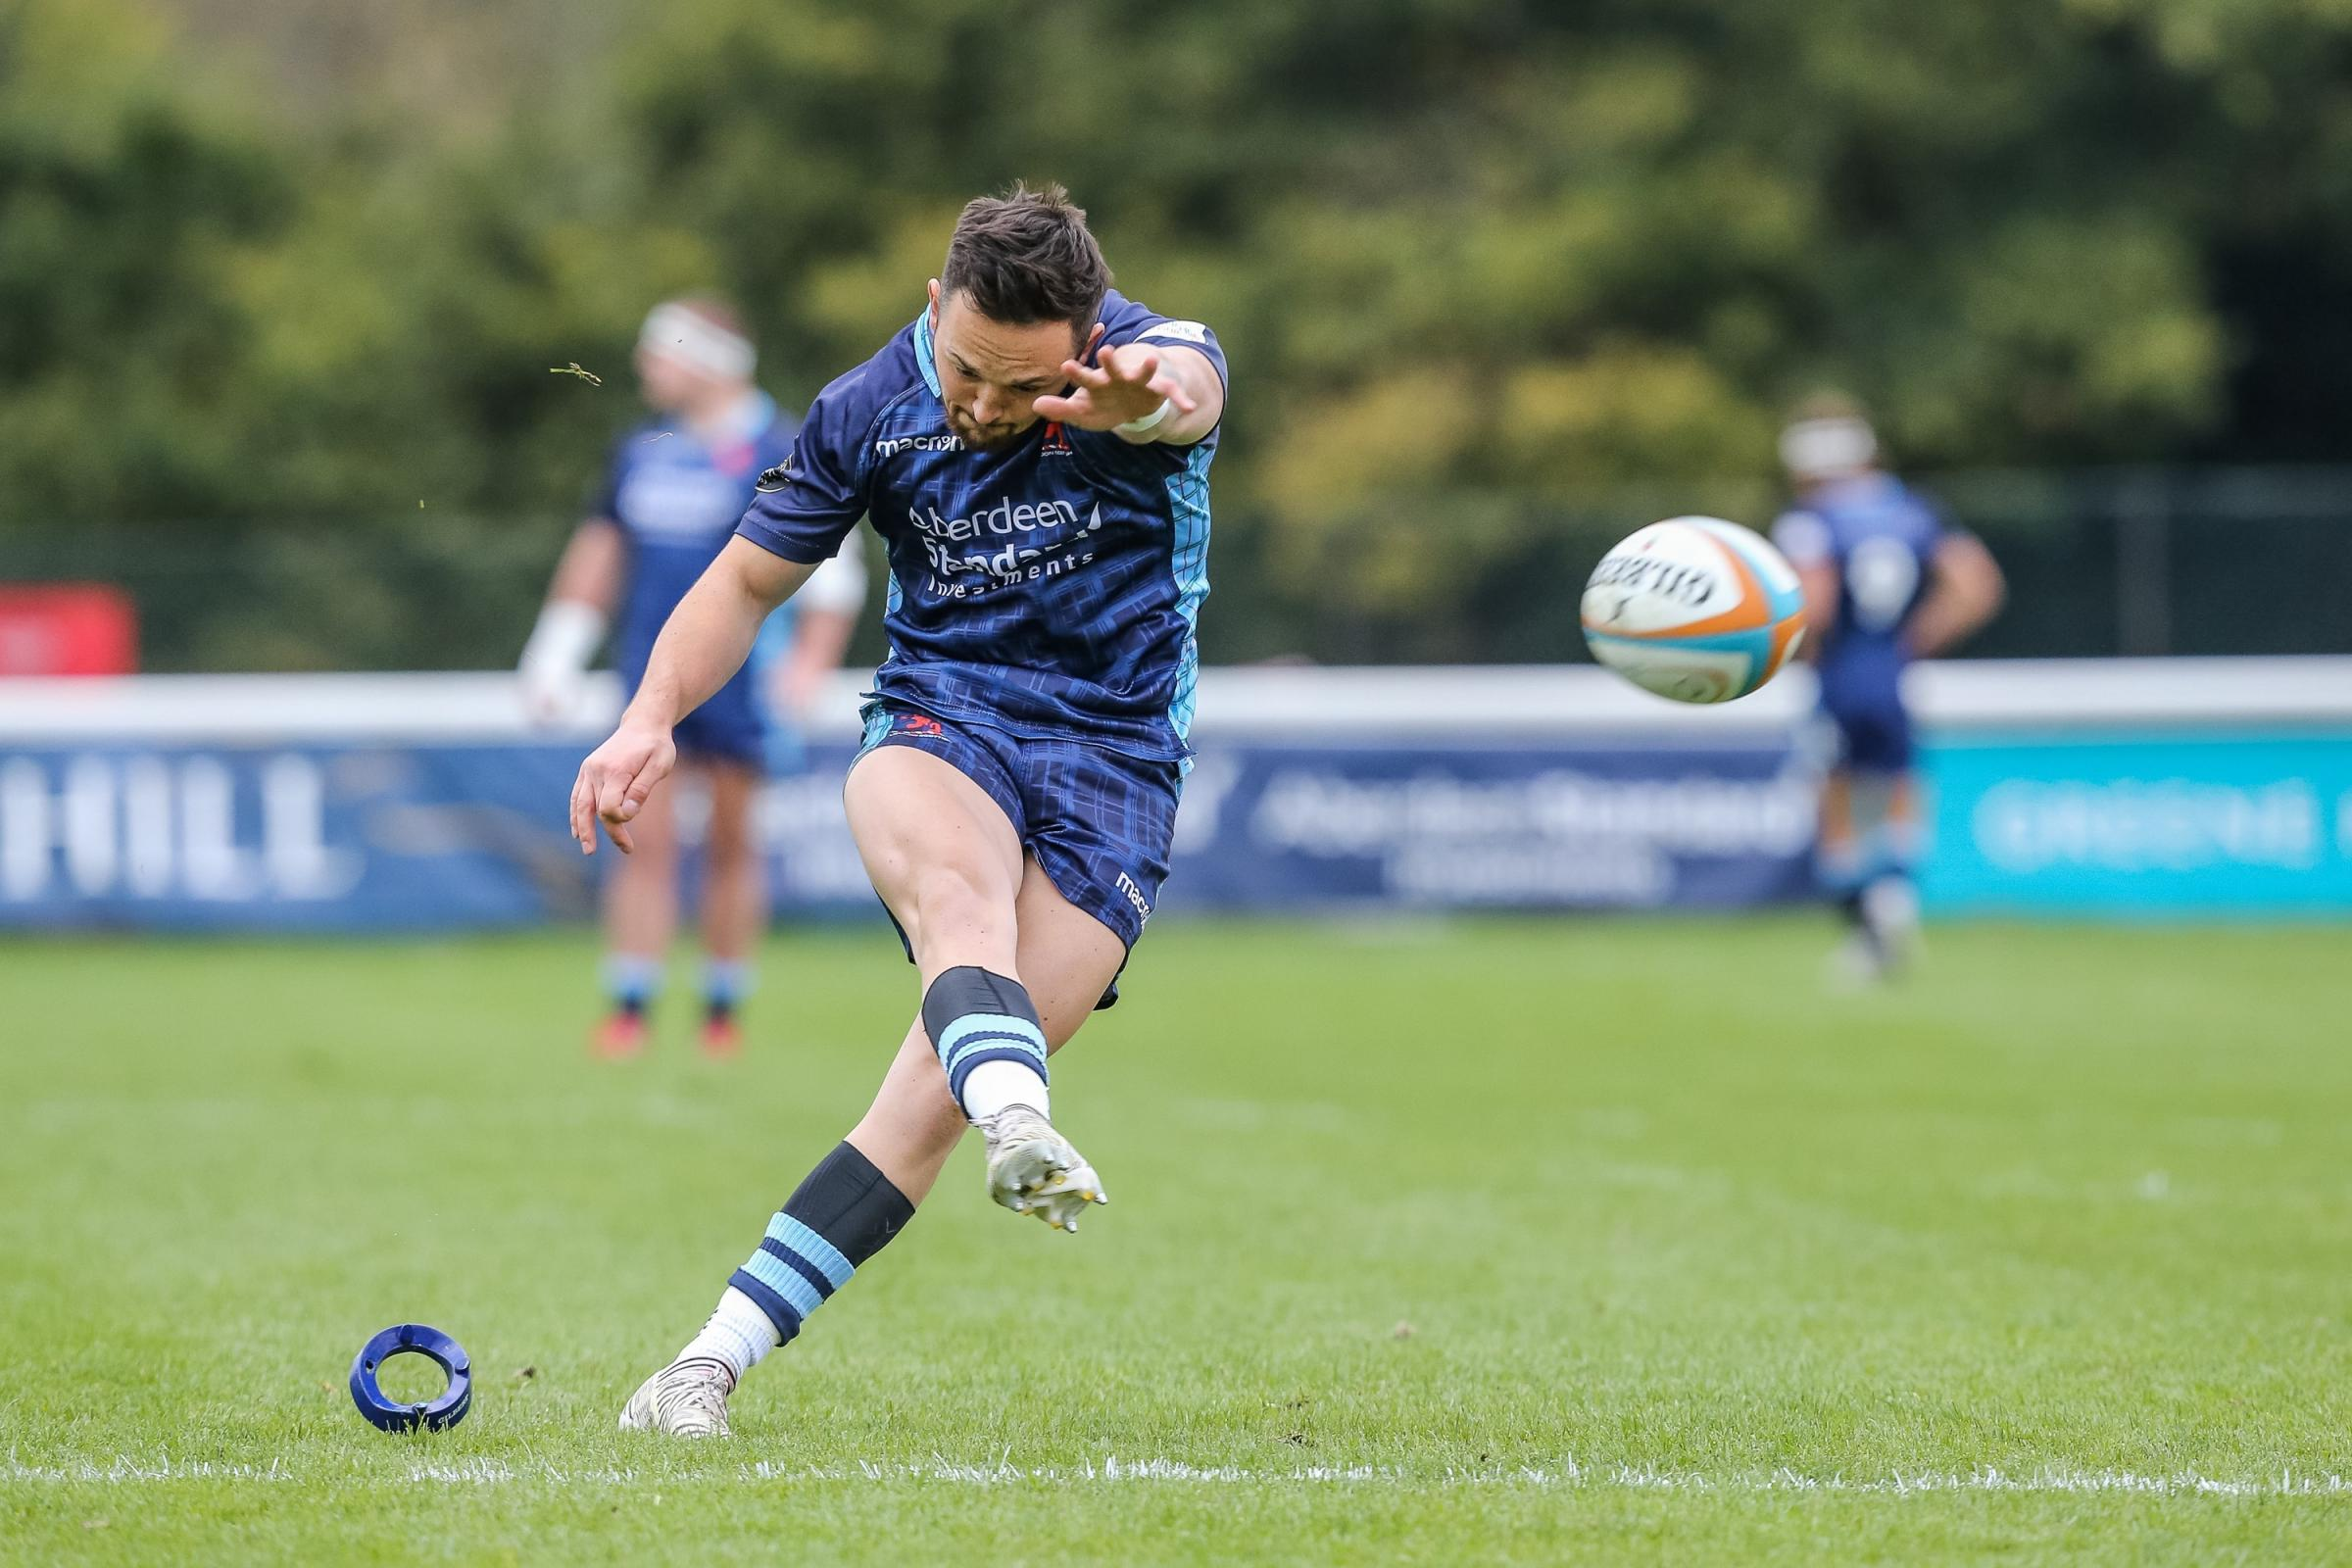 Jacob Perry joined Scottish from Hartpury in the summer (pic: PRiME Media Images)